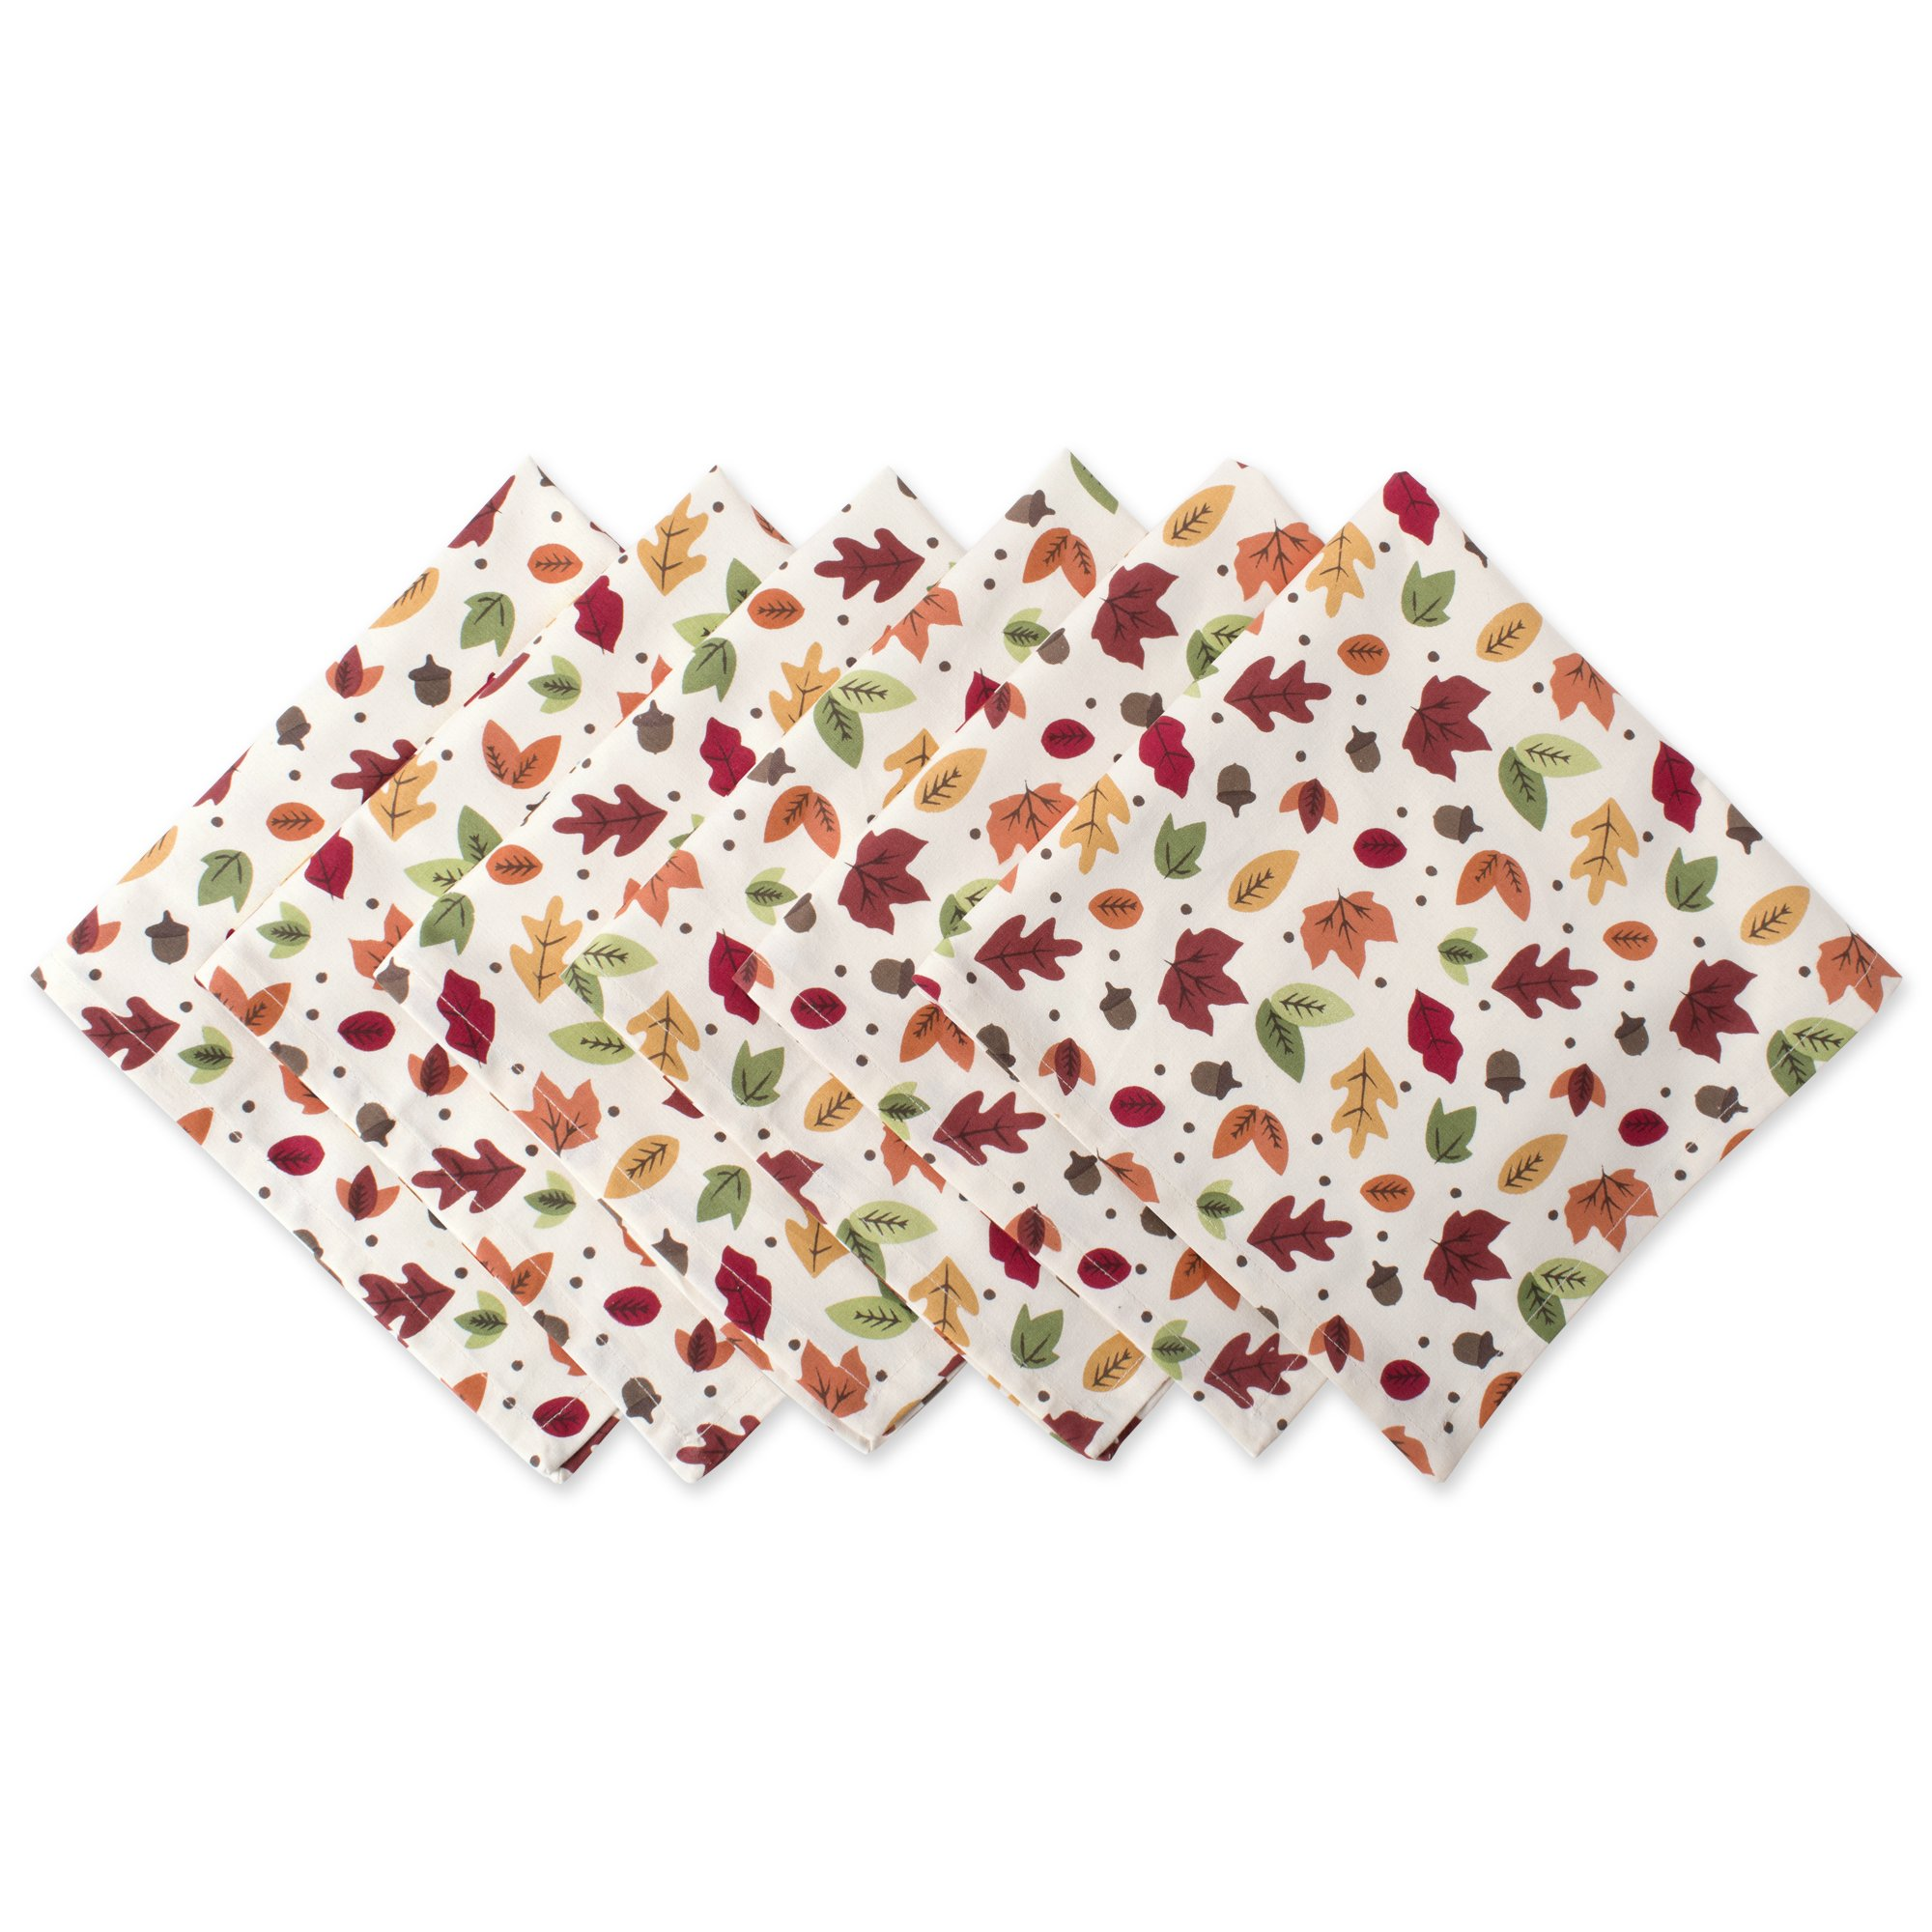 DII Oversized Napkin for Fall Holidays, Buffets, Parties, Special Occasions or Everyday Use (Set of 6), 20 x 20 by DII